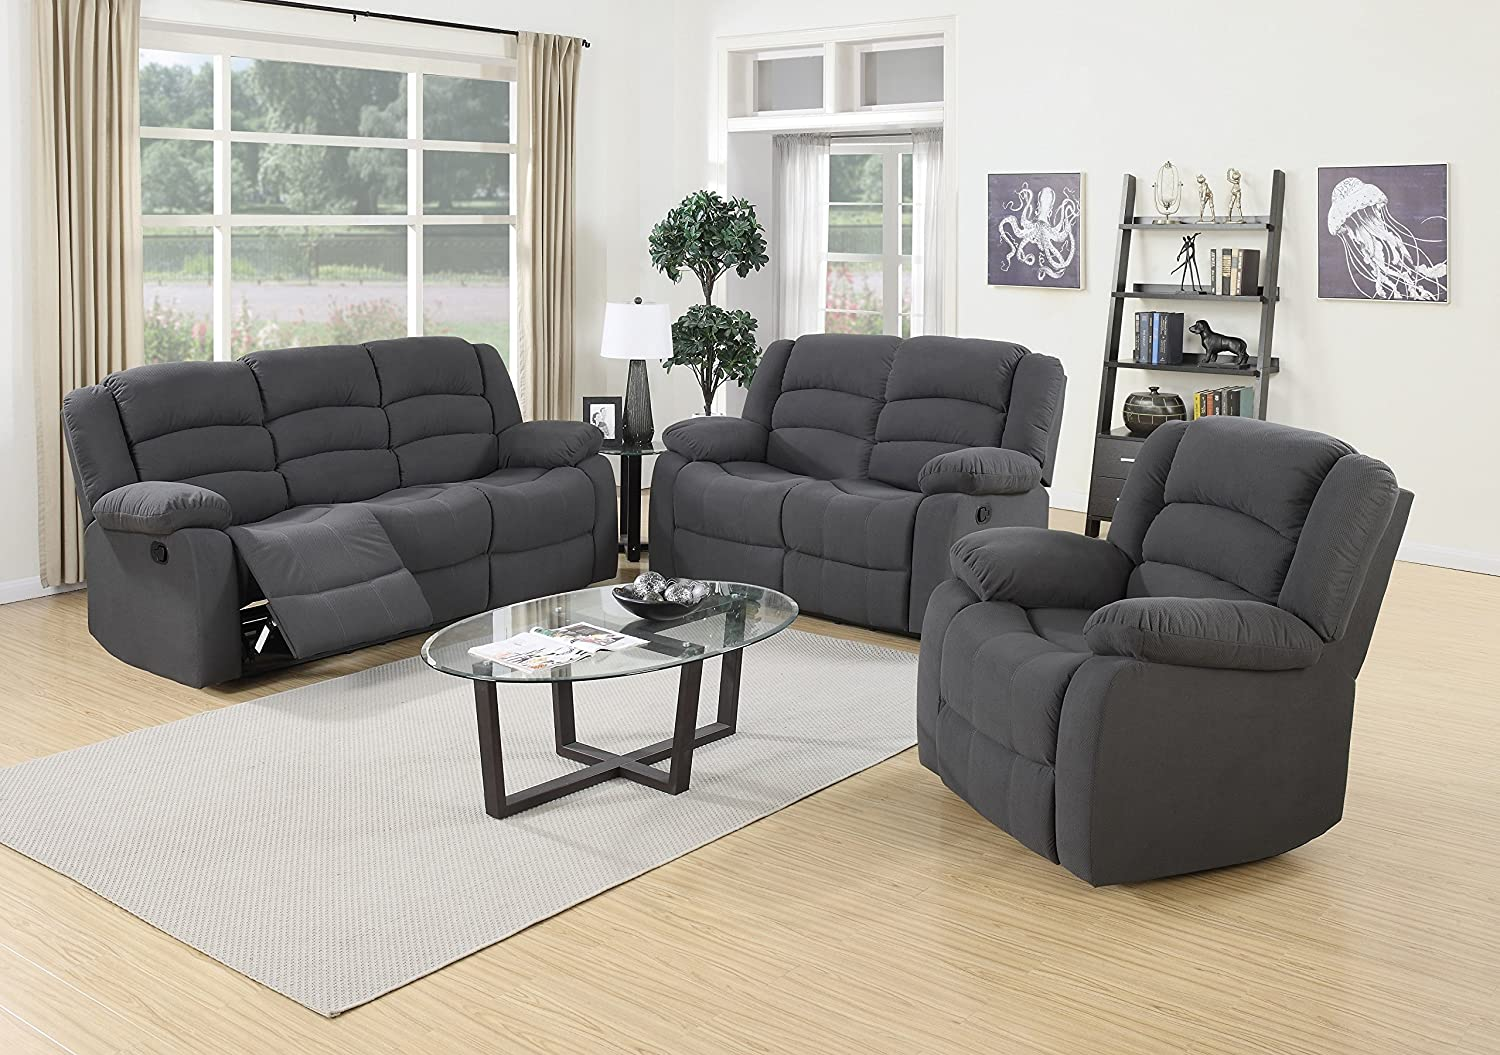 Amazon Com Us Pride Furniture 3 Piece Brown Fabric Reclining Sofa  ~ Sofa Loveseat And Chair Sets